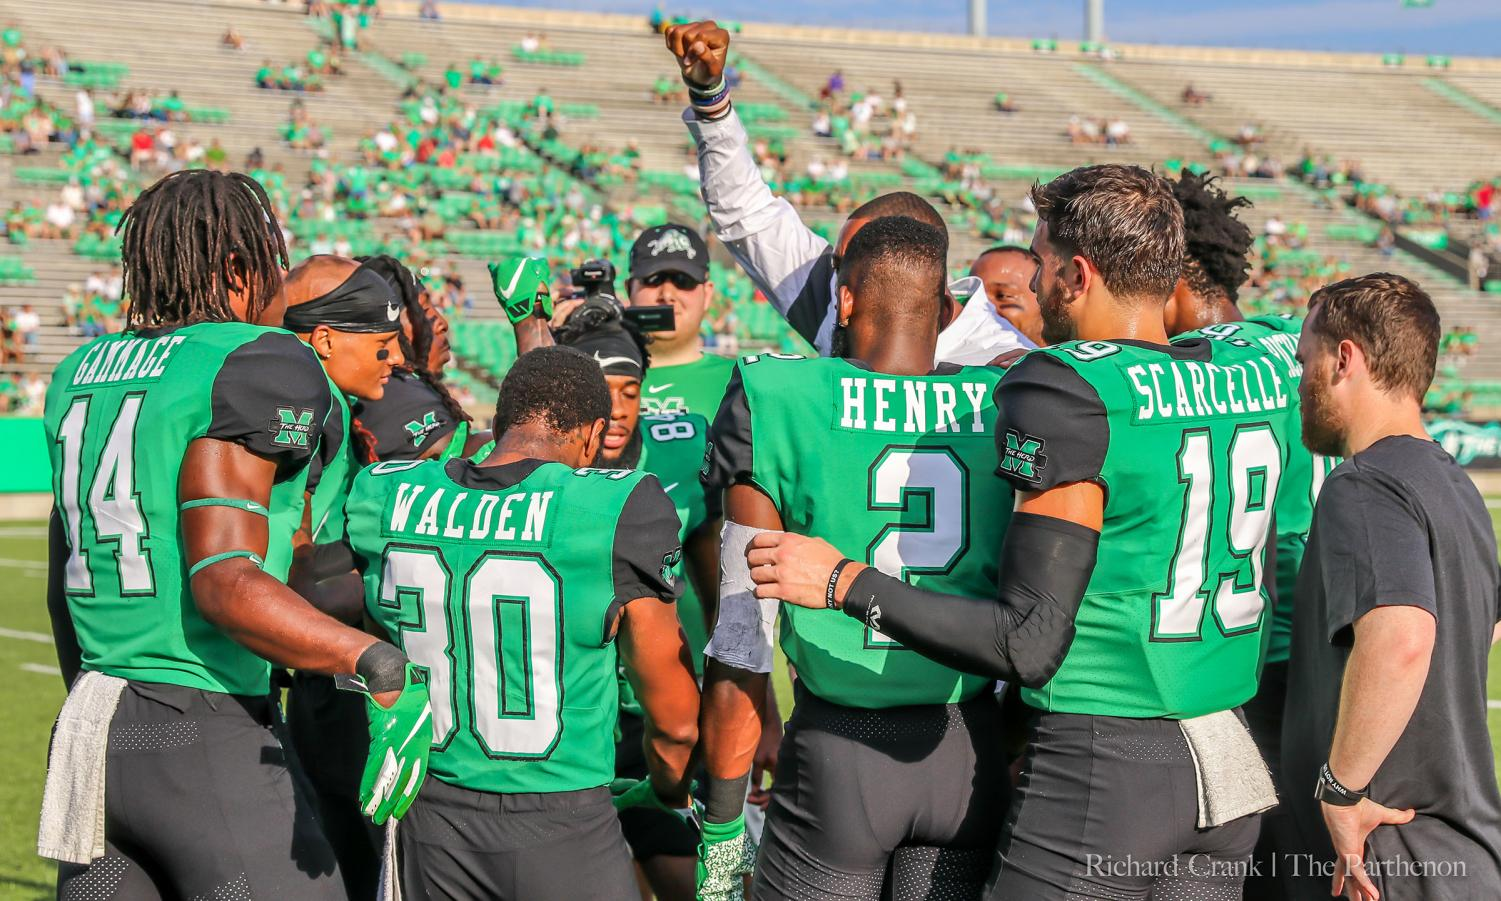 Members of the Marshall football team huddle together prior to the start of the game against VMI.